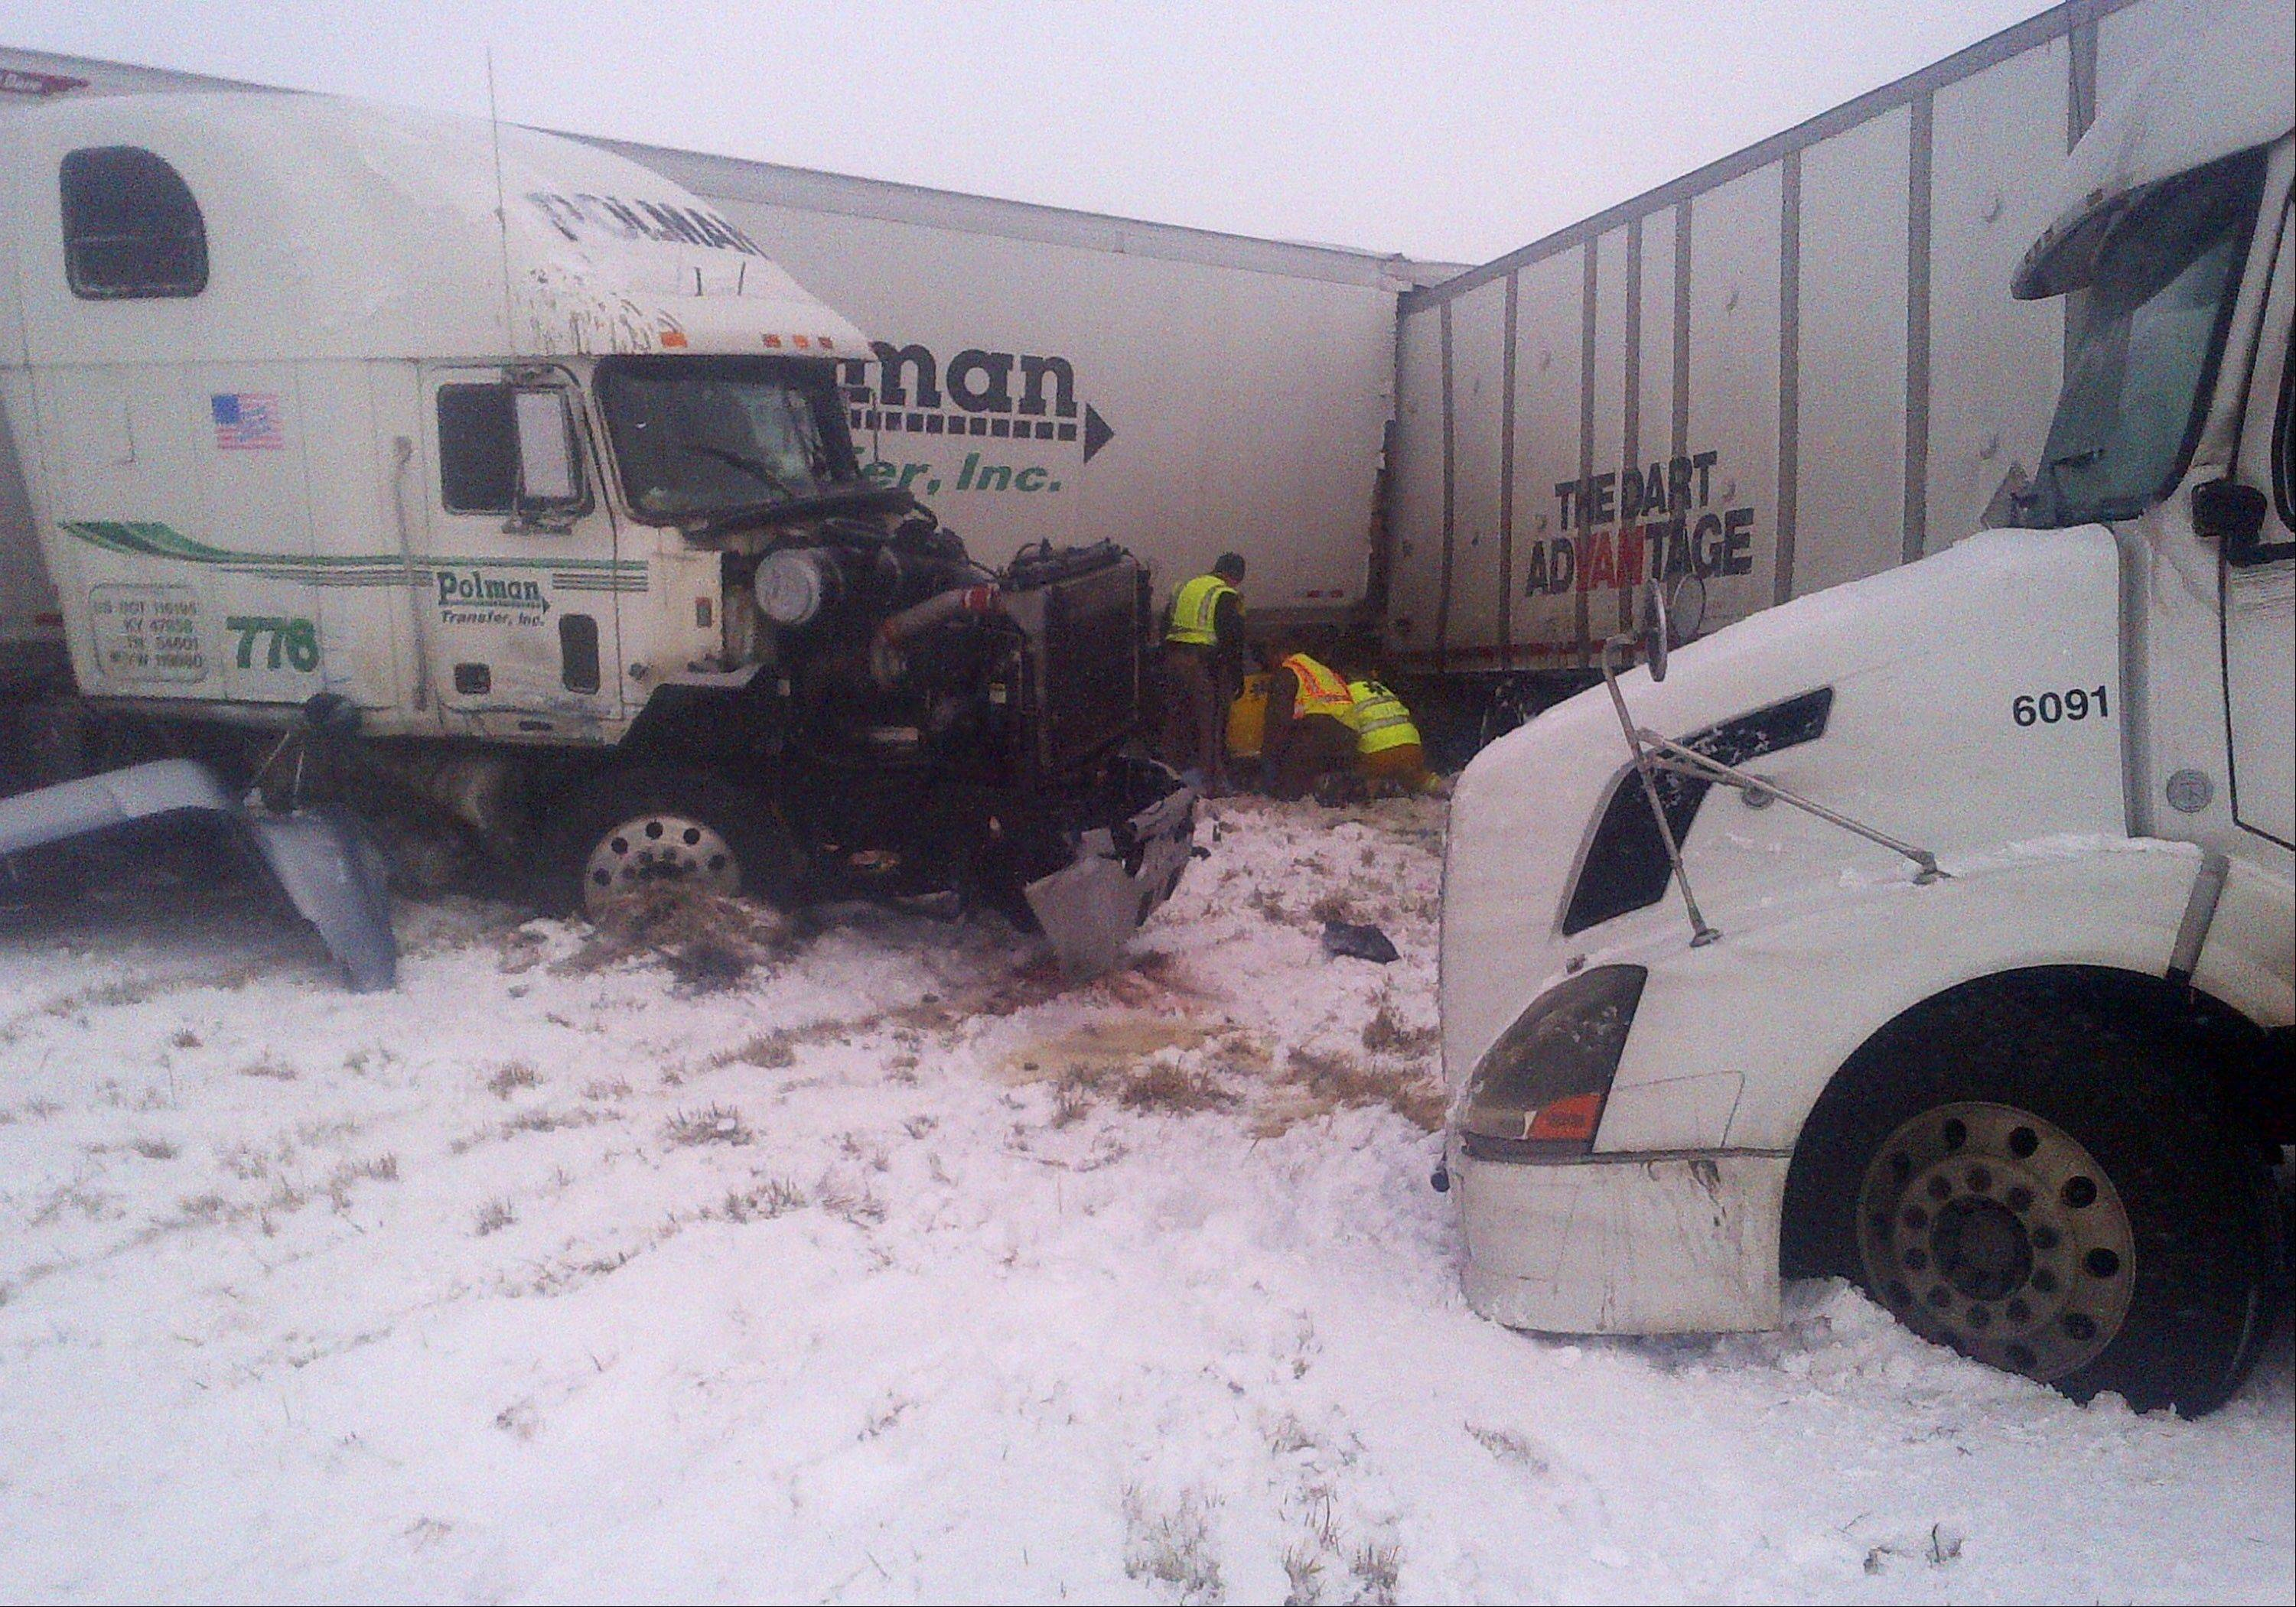 The scene of a 25-vehicle pileup that killed two people and injured several others Thursday on Interstate 35, about 60 miles north of Des Moines, Iowa.